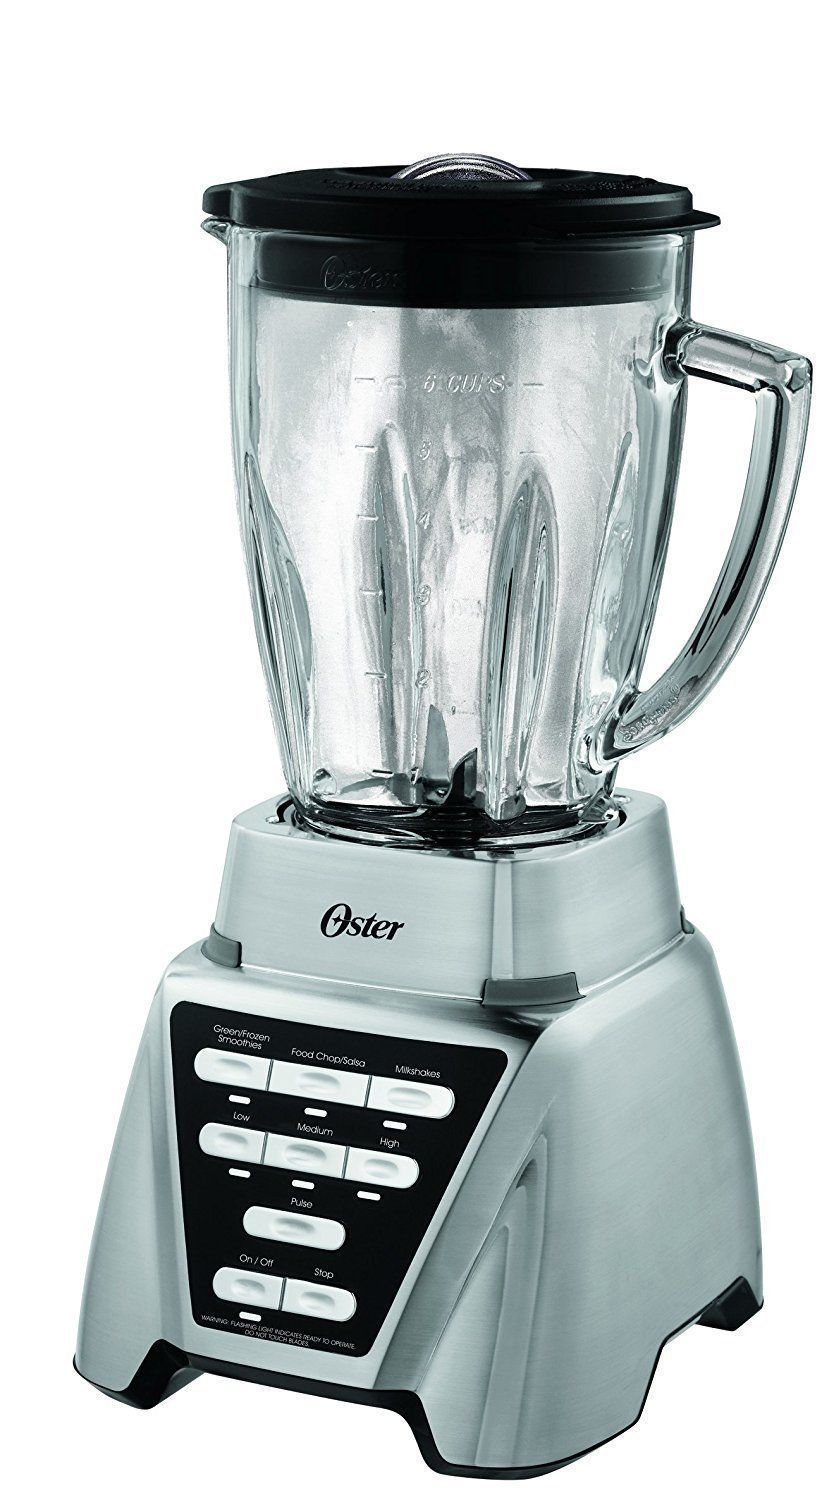 oster pro 1200 blender 3 in 1 with food processor. Black Bedroom Furniture Sets. Home Design Ideas